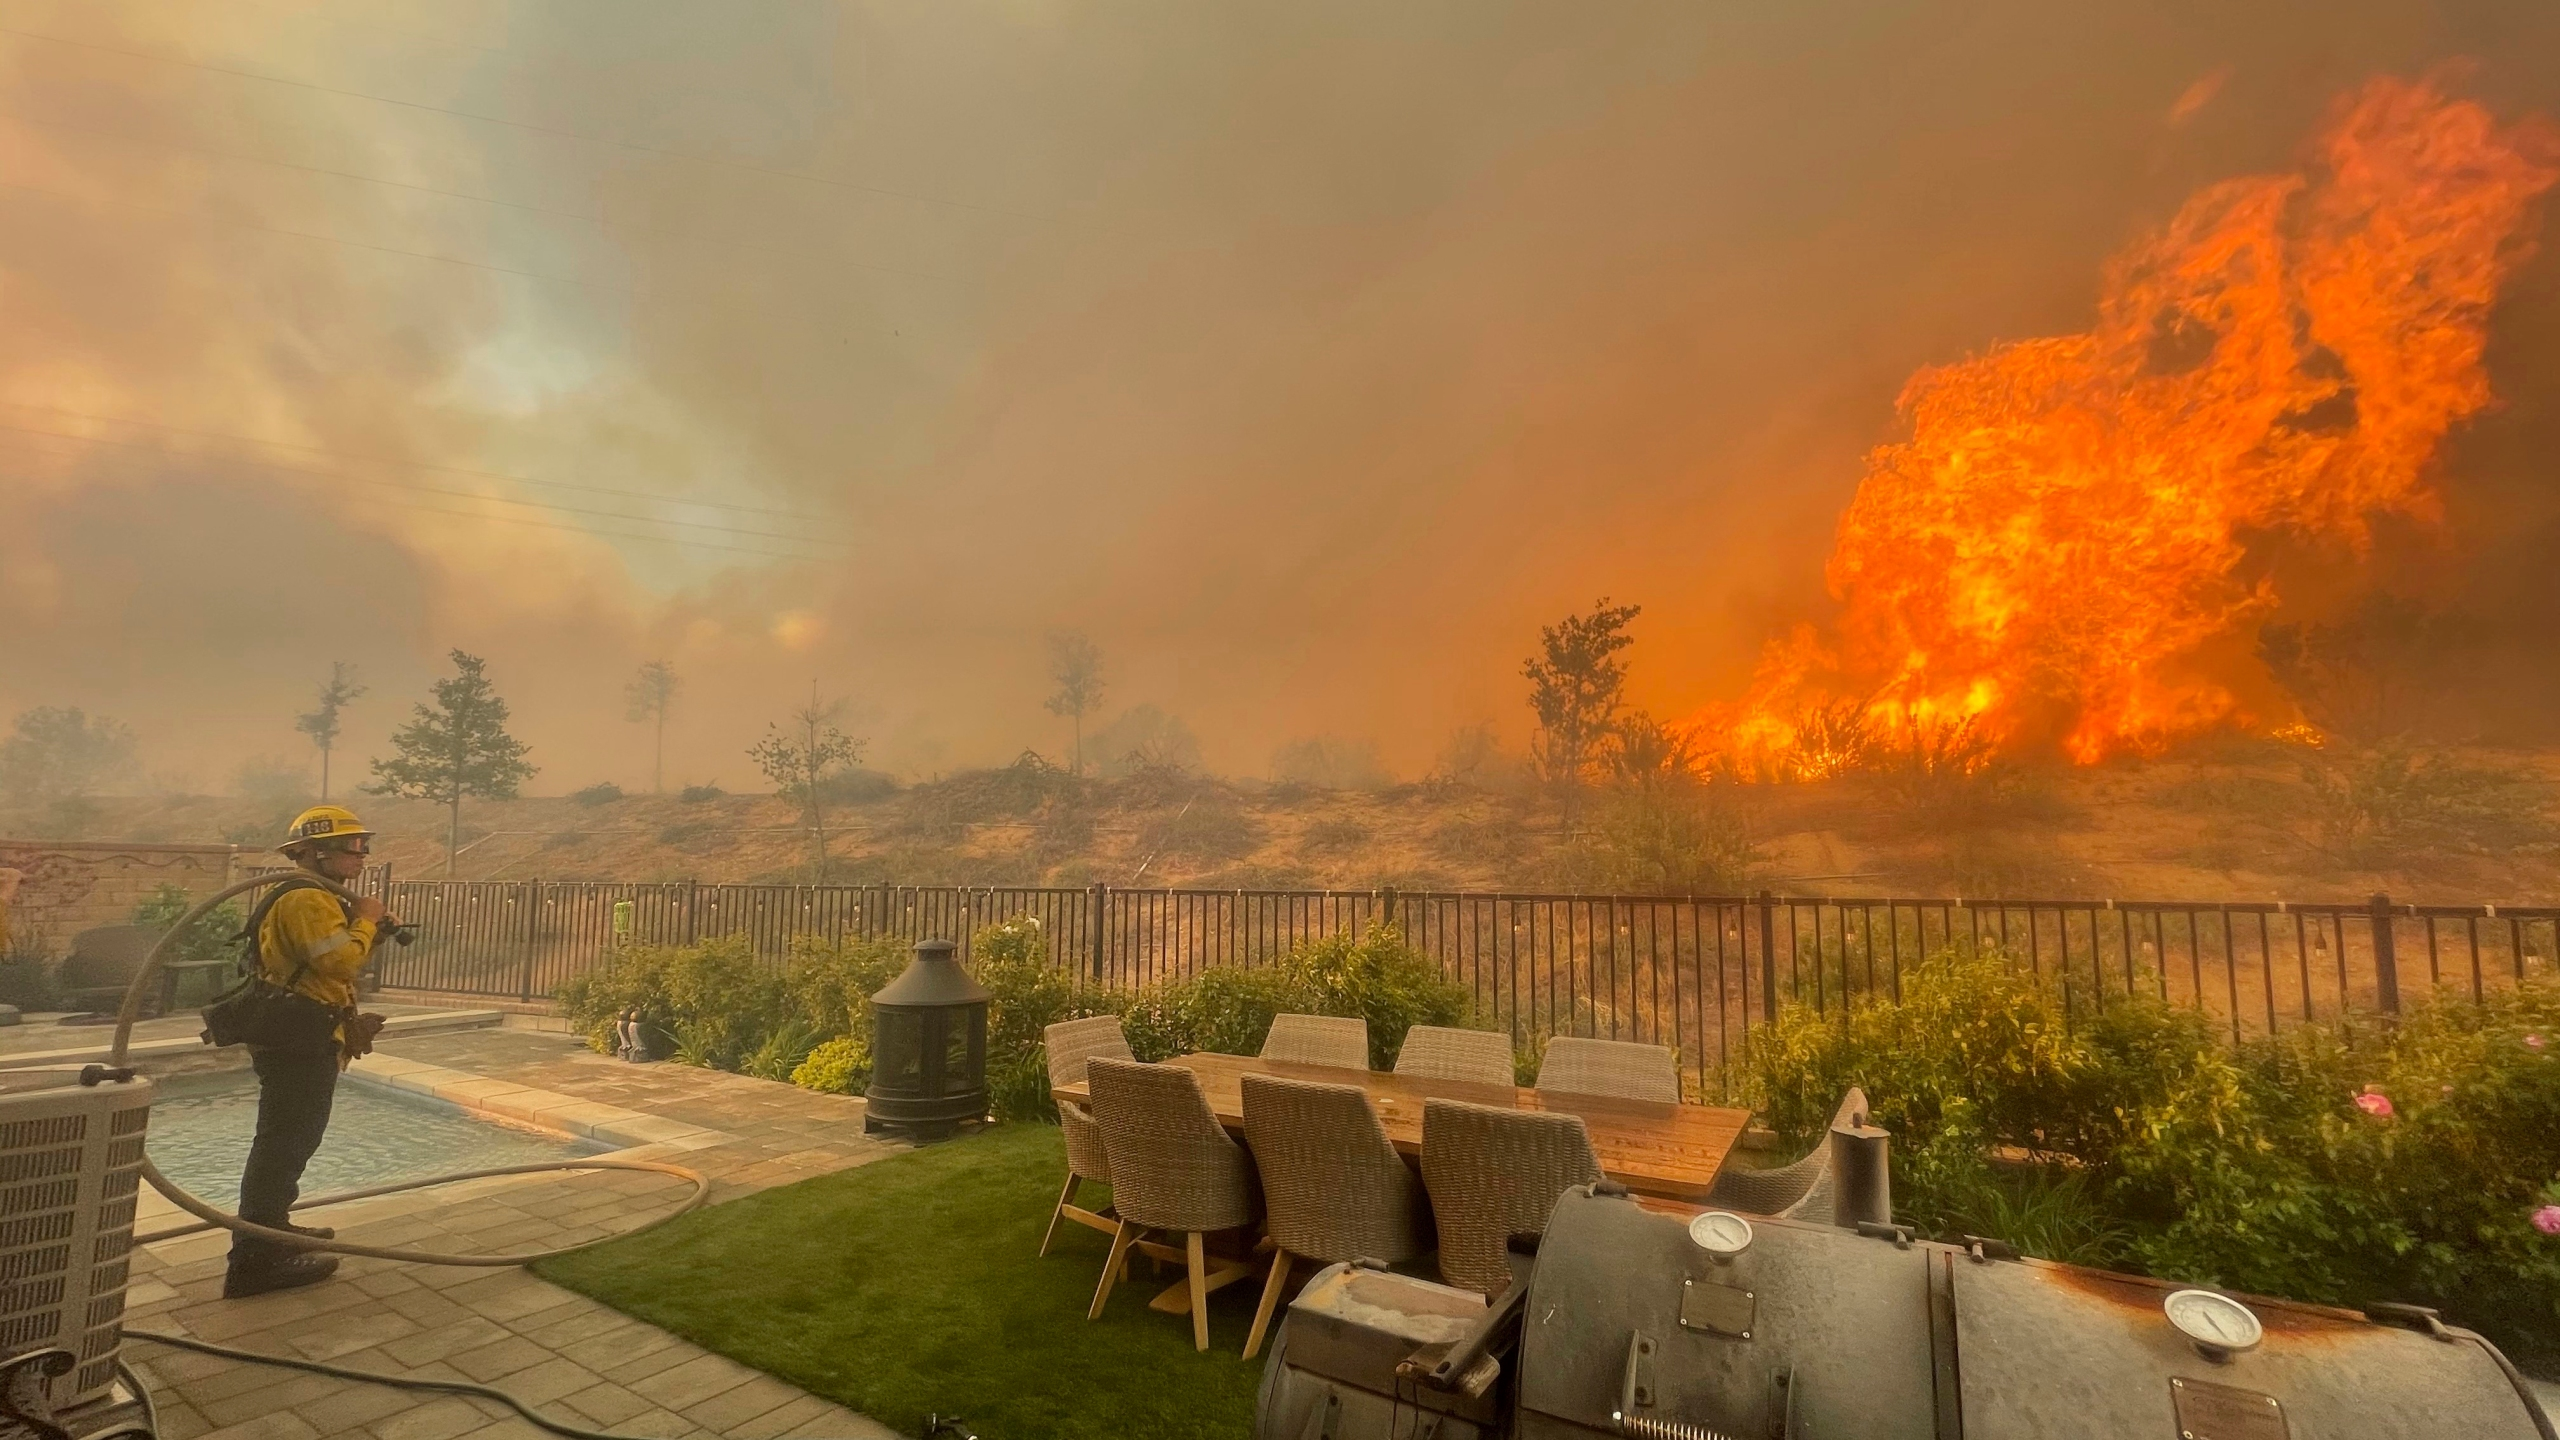 In this April 28, 2021, file photo, a firefighter prepares to battle the North Fire from a backyard on Via Patina, in Santa Clarita. (Emily Alvarenga//The Santa Clarita Valley Signal via AP, File)